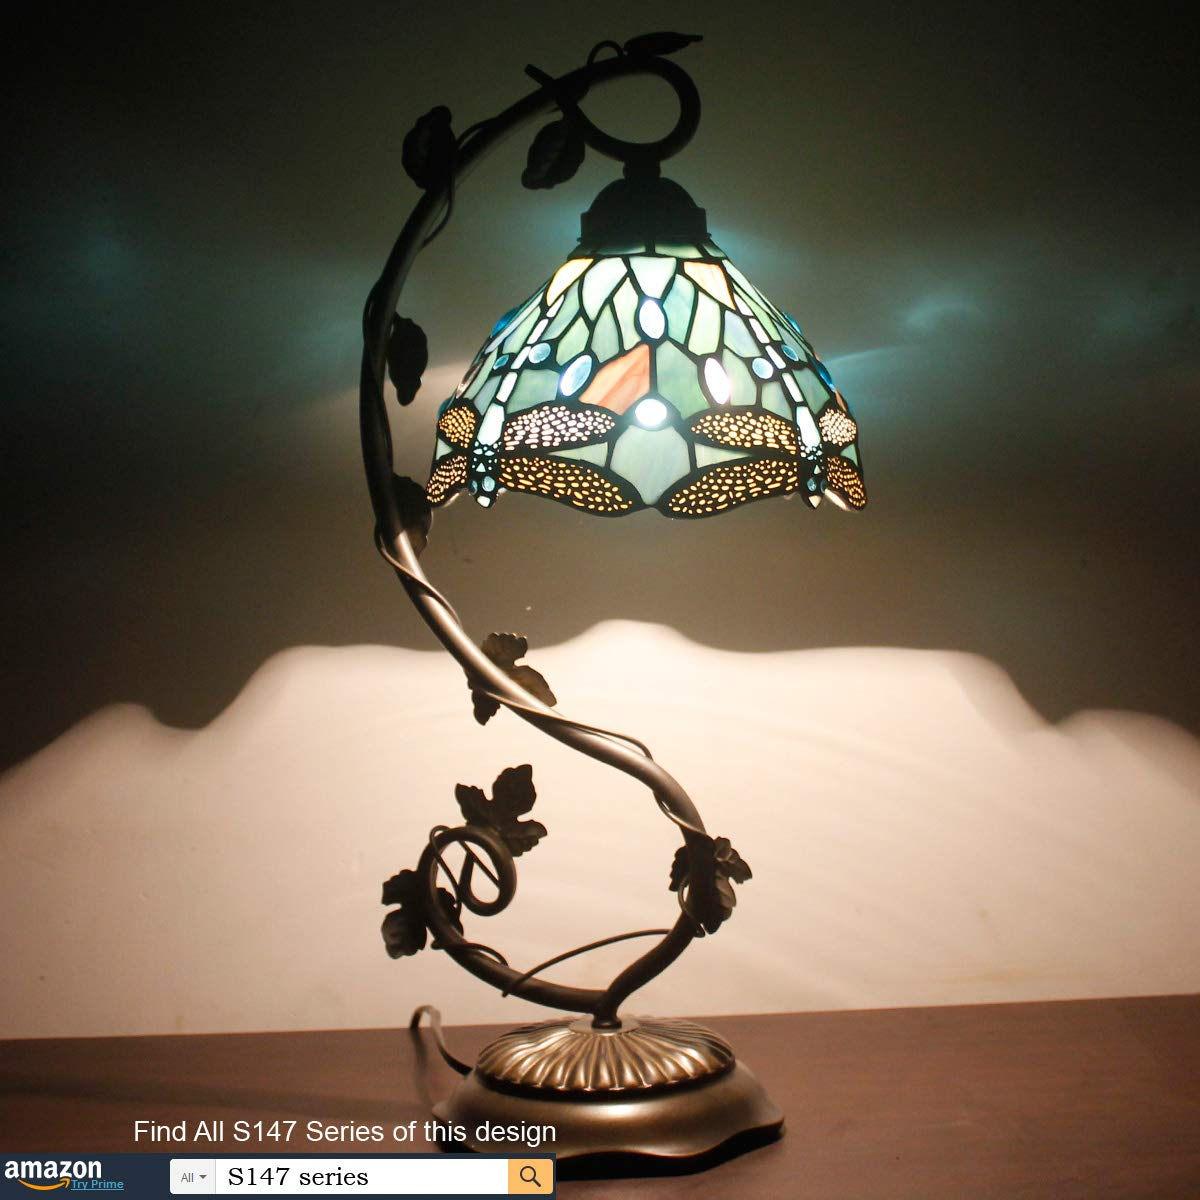 Tiffany Lamps Stained Glass Table Desk Reading Lamp Crystal Bead Sea Blue Dragonfly Style Shade W8H22 Inch for Living Room Bedroom Bookcase Dresser Coffee Table S147 WERFACTORY by WERFACTORY (Image #3)